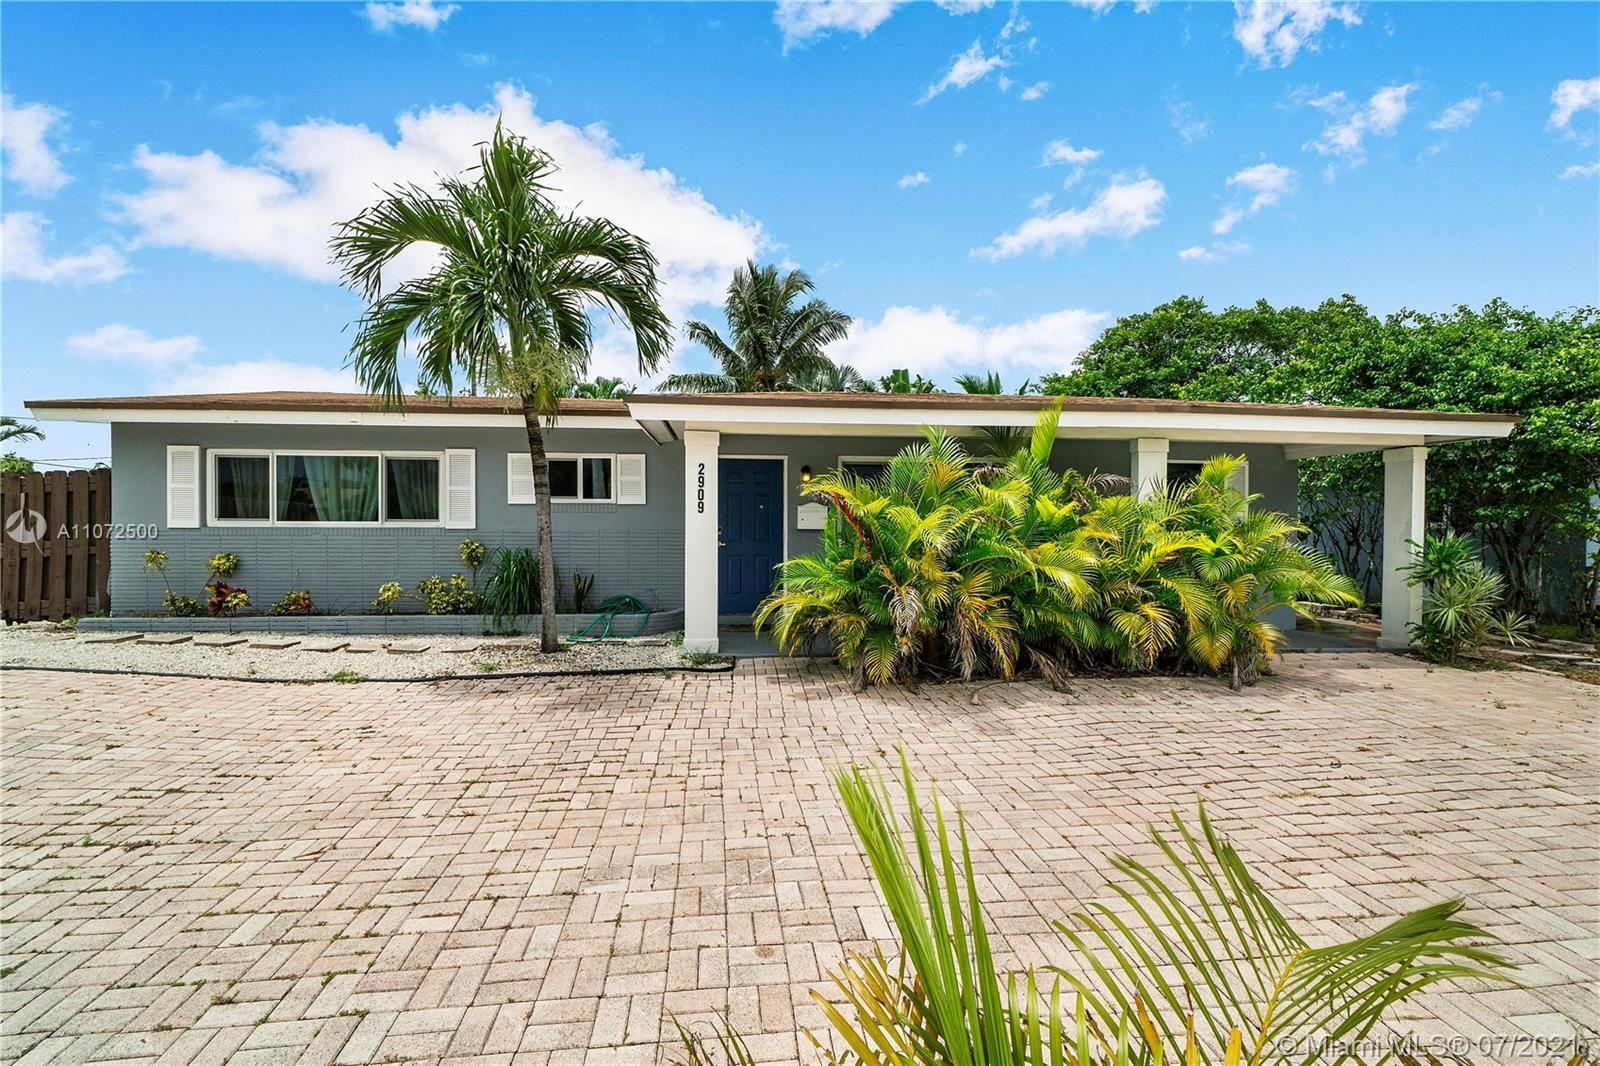 2909 NW 9th Ave, Wilton Manors, FL 33311 - #: A11072500